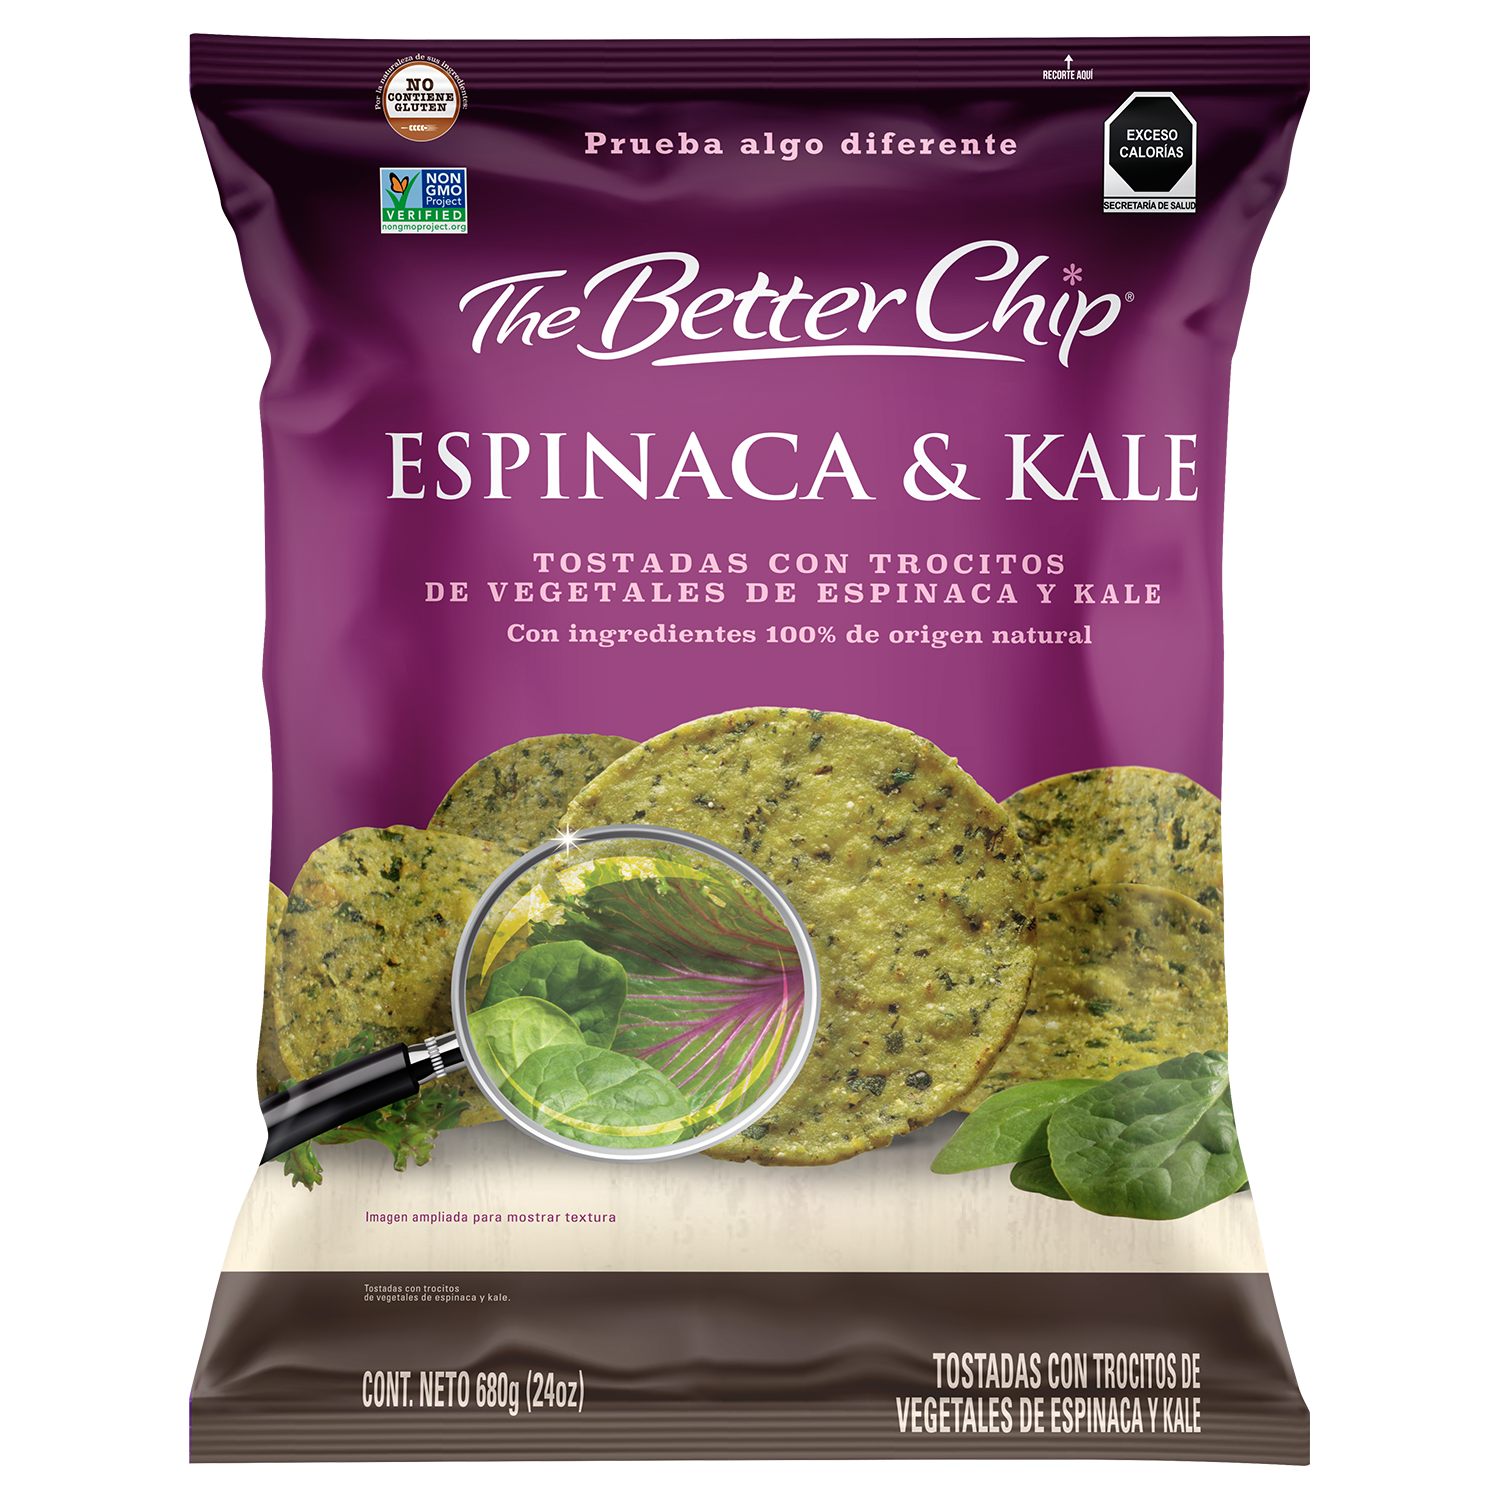 The Better Chip Espinaca & Kale - Club